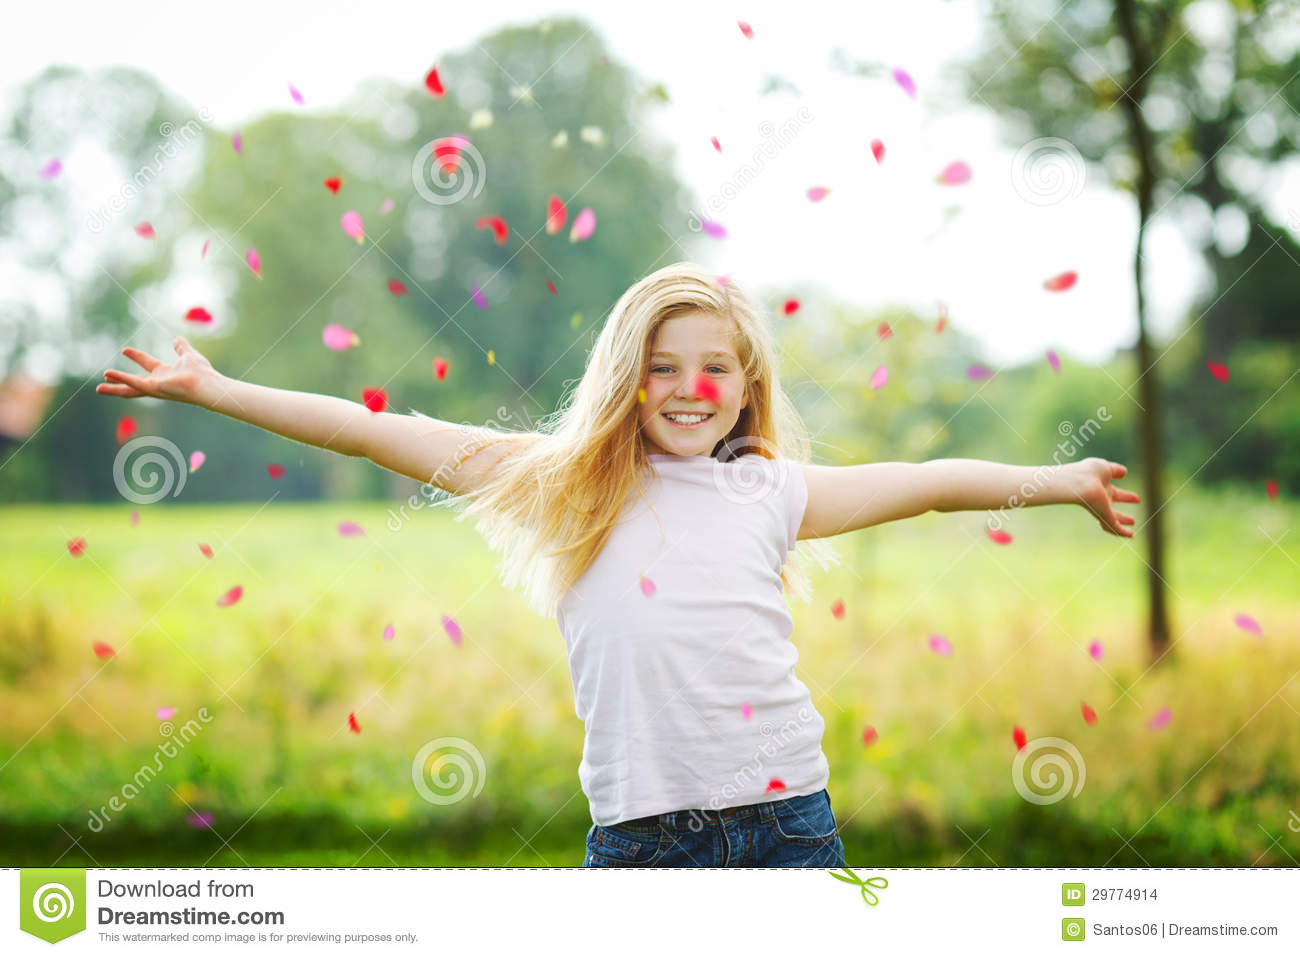 Young girl throwing petals